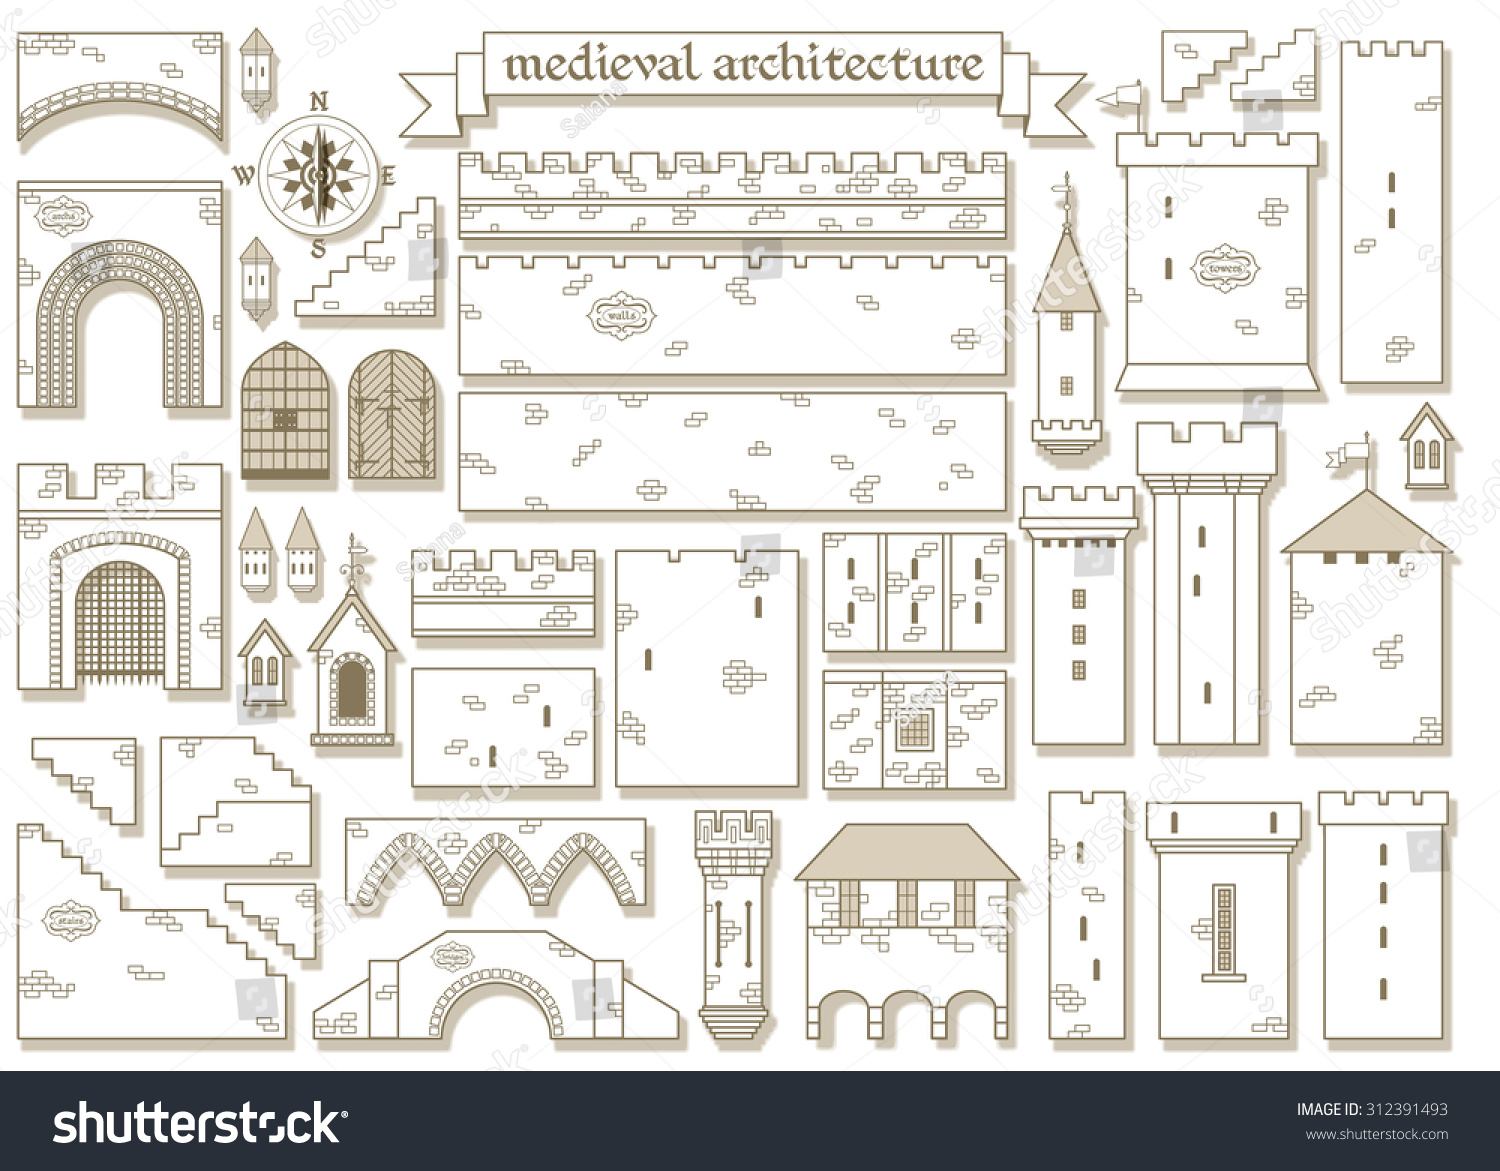 Vector Illustration: Graphic Architectural Elements Of The Middle Ages  Royal Castle   Make A Design